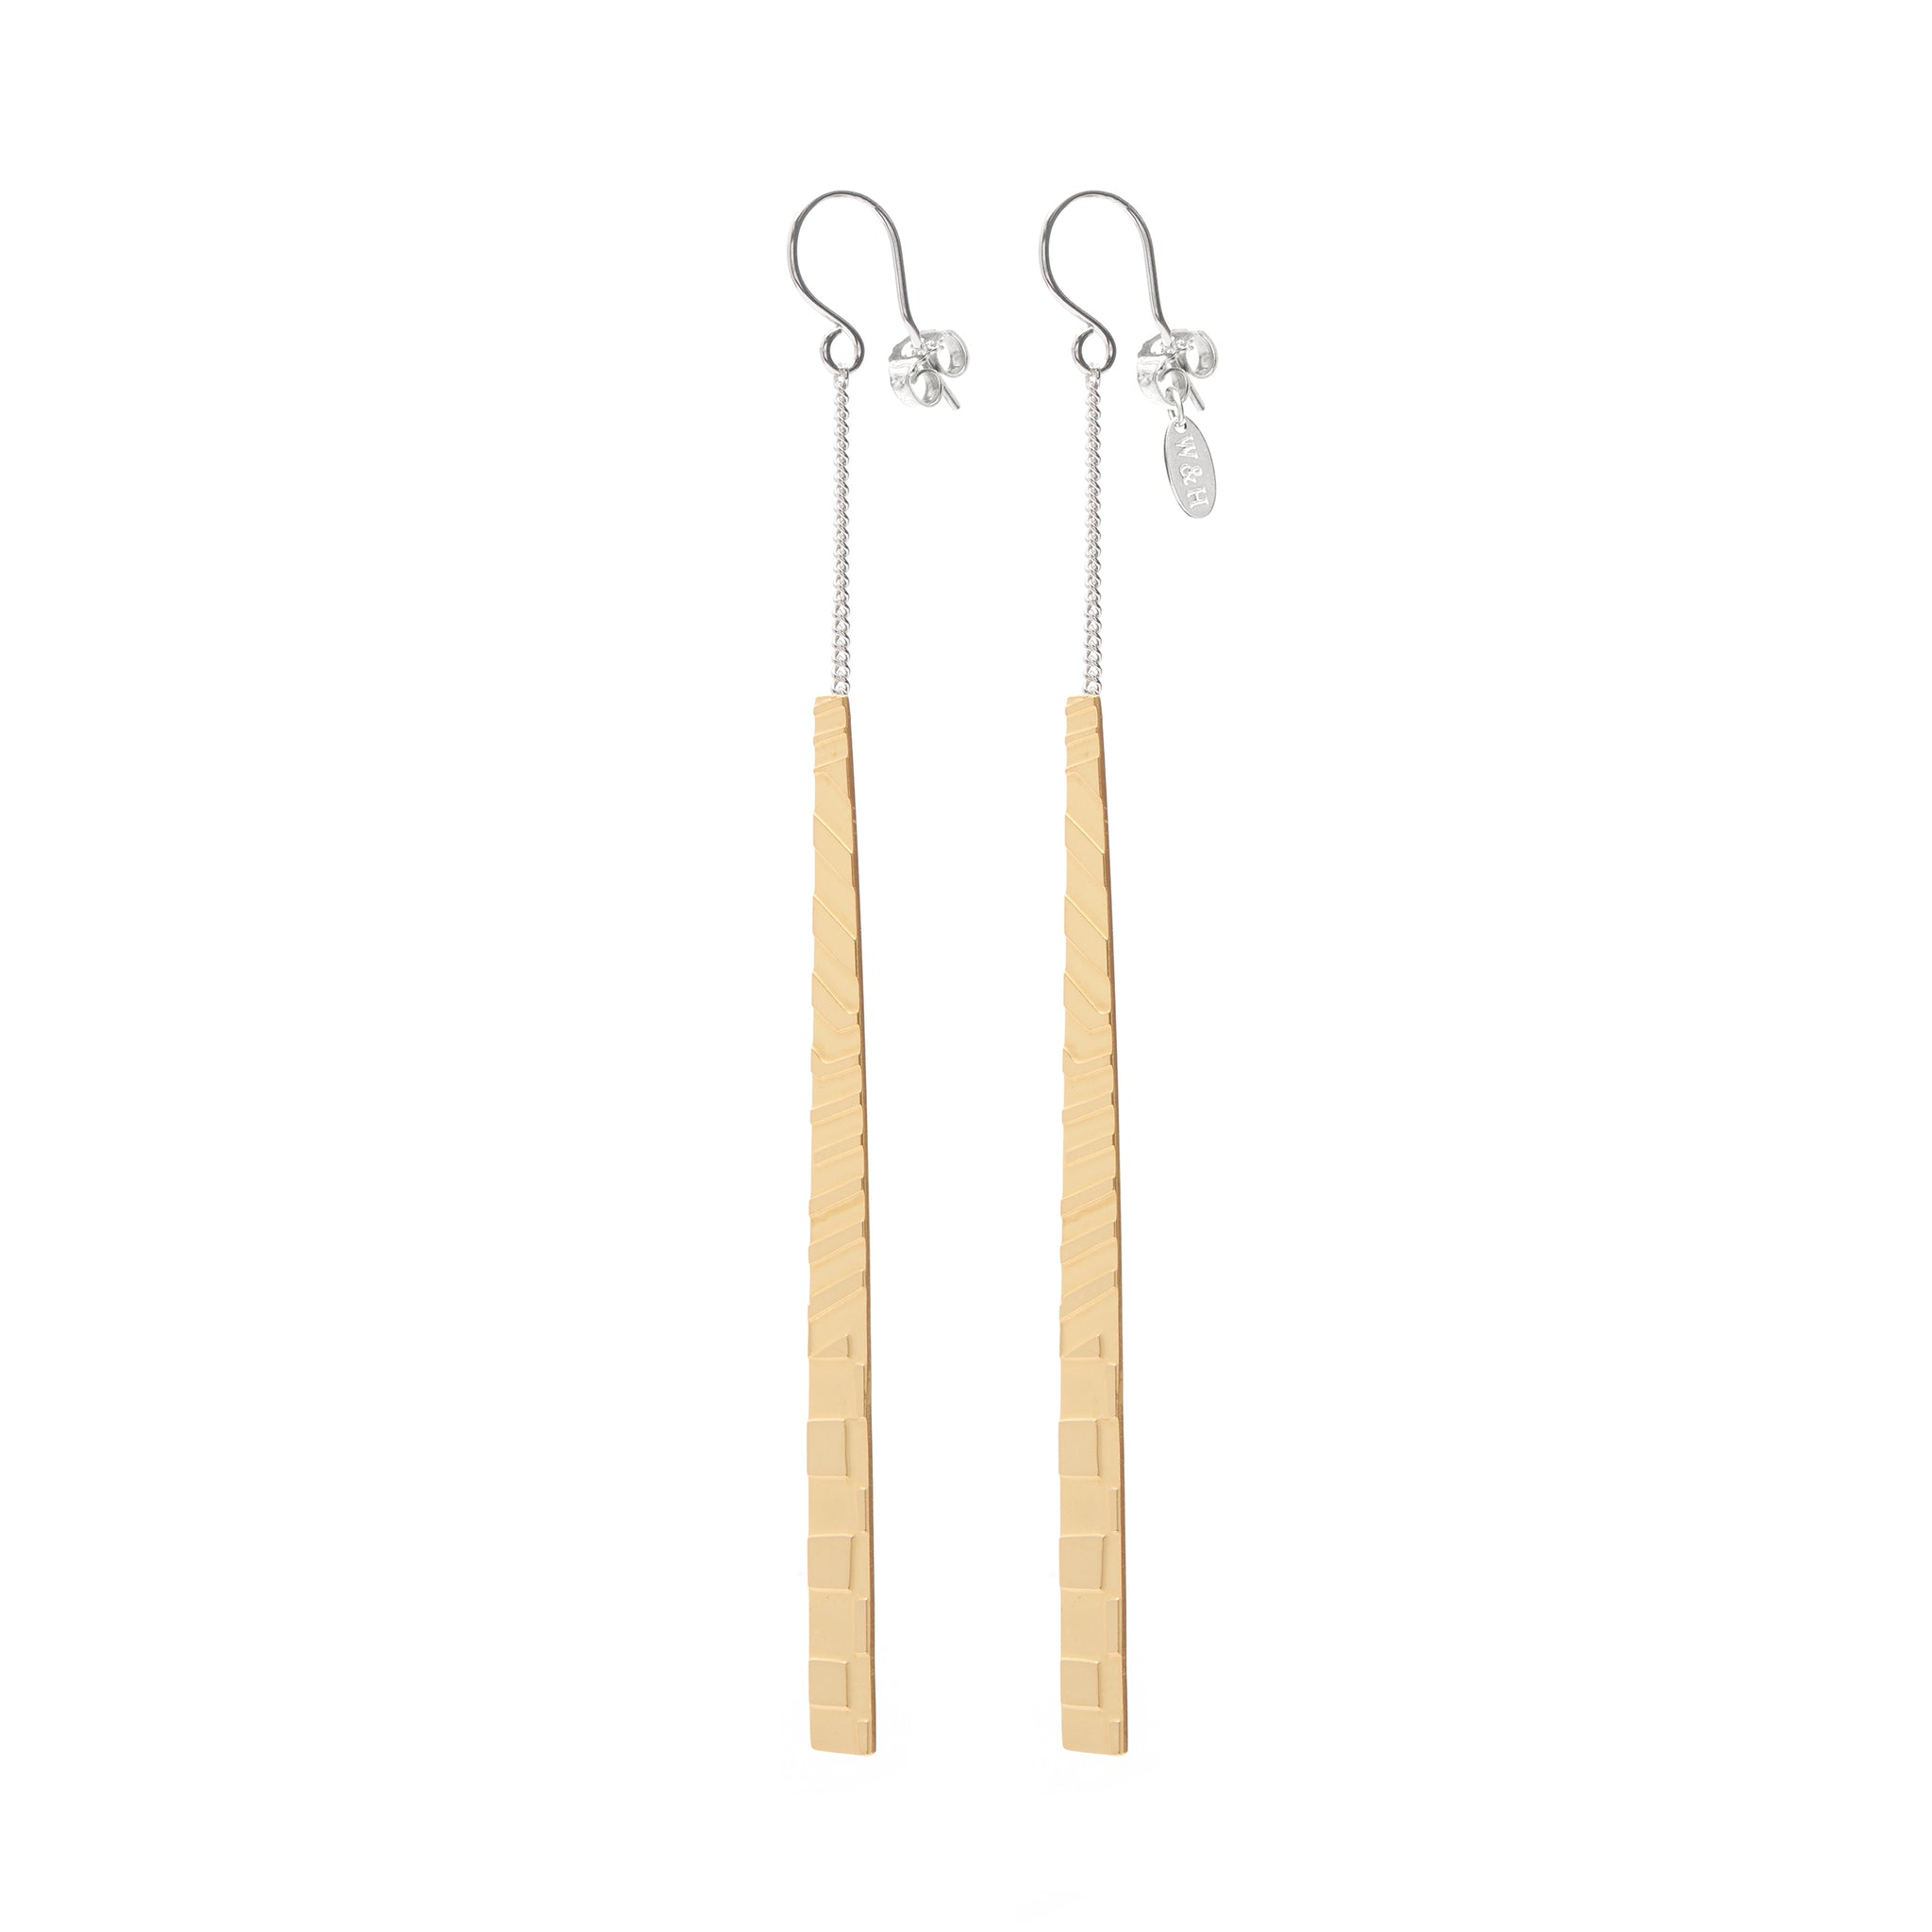 Elegant Hook Earrings with long etched Pendant